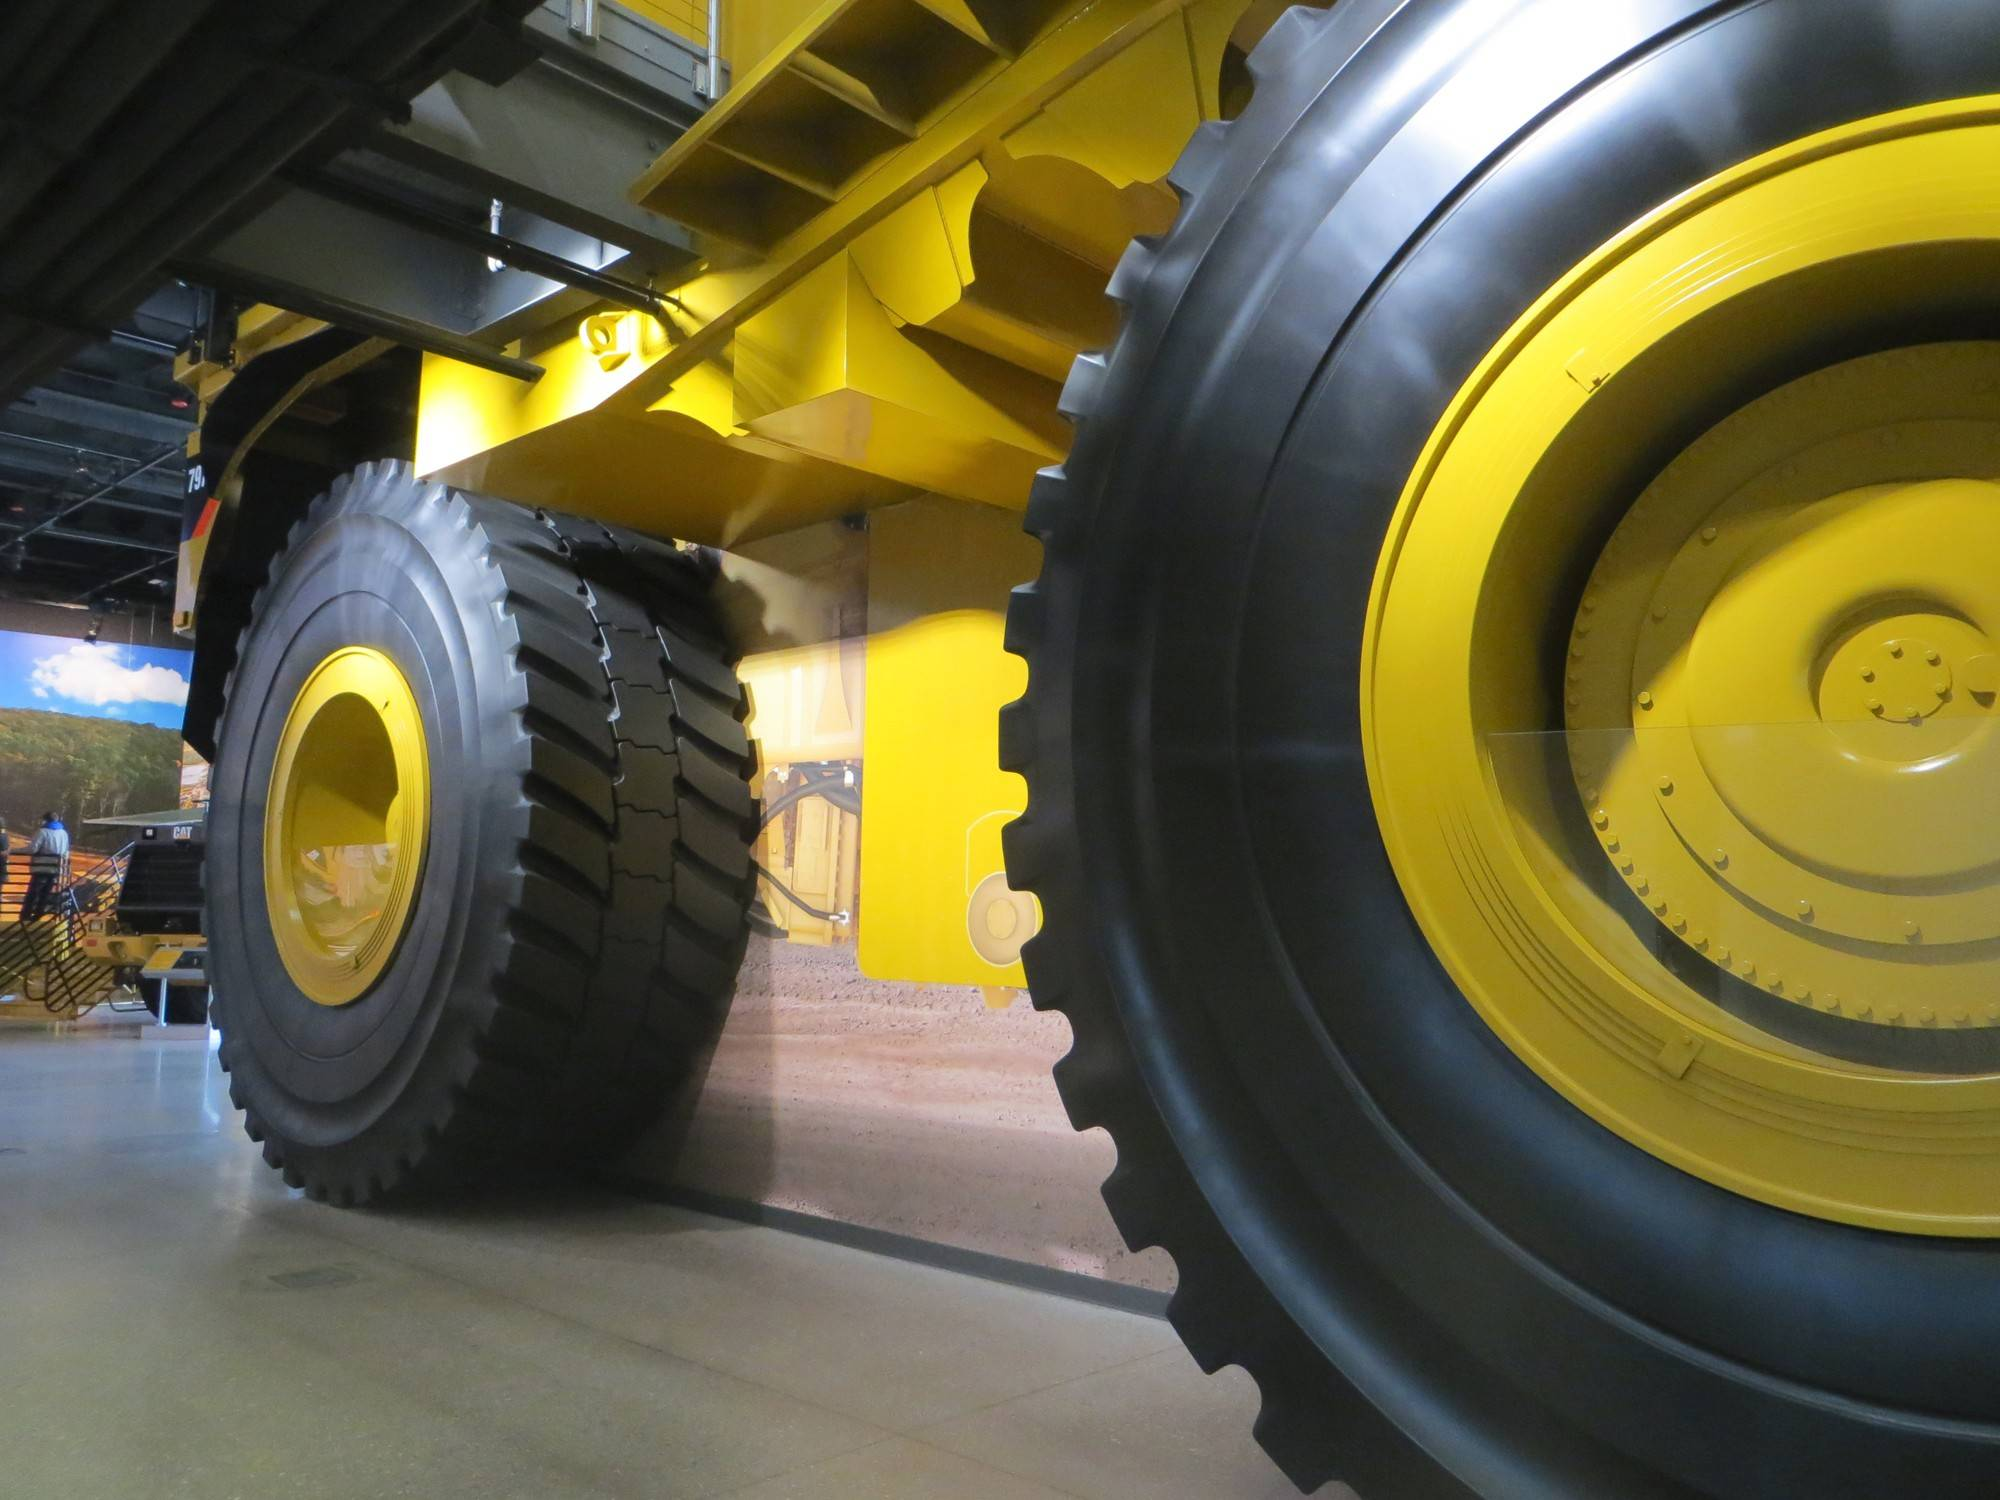 At the Caterpillar Visitors Center in Peoria, Ill., guests watch an introduction video inside the massive mining truck and take photos alongside its 13-foot-tall tires.